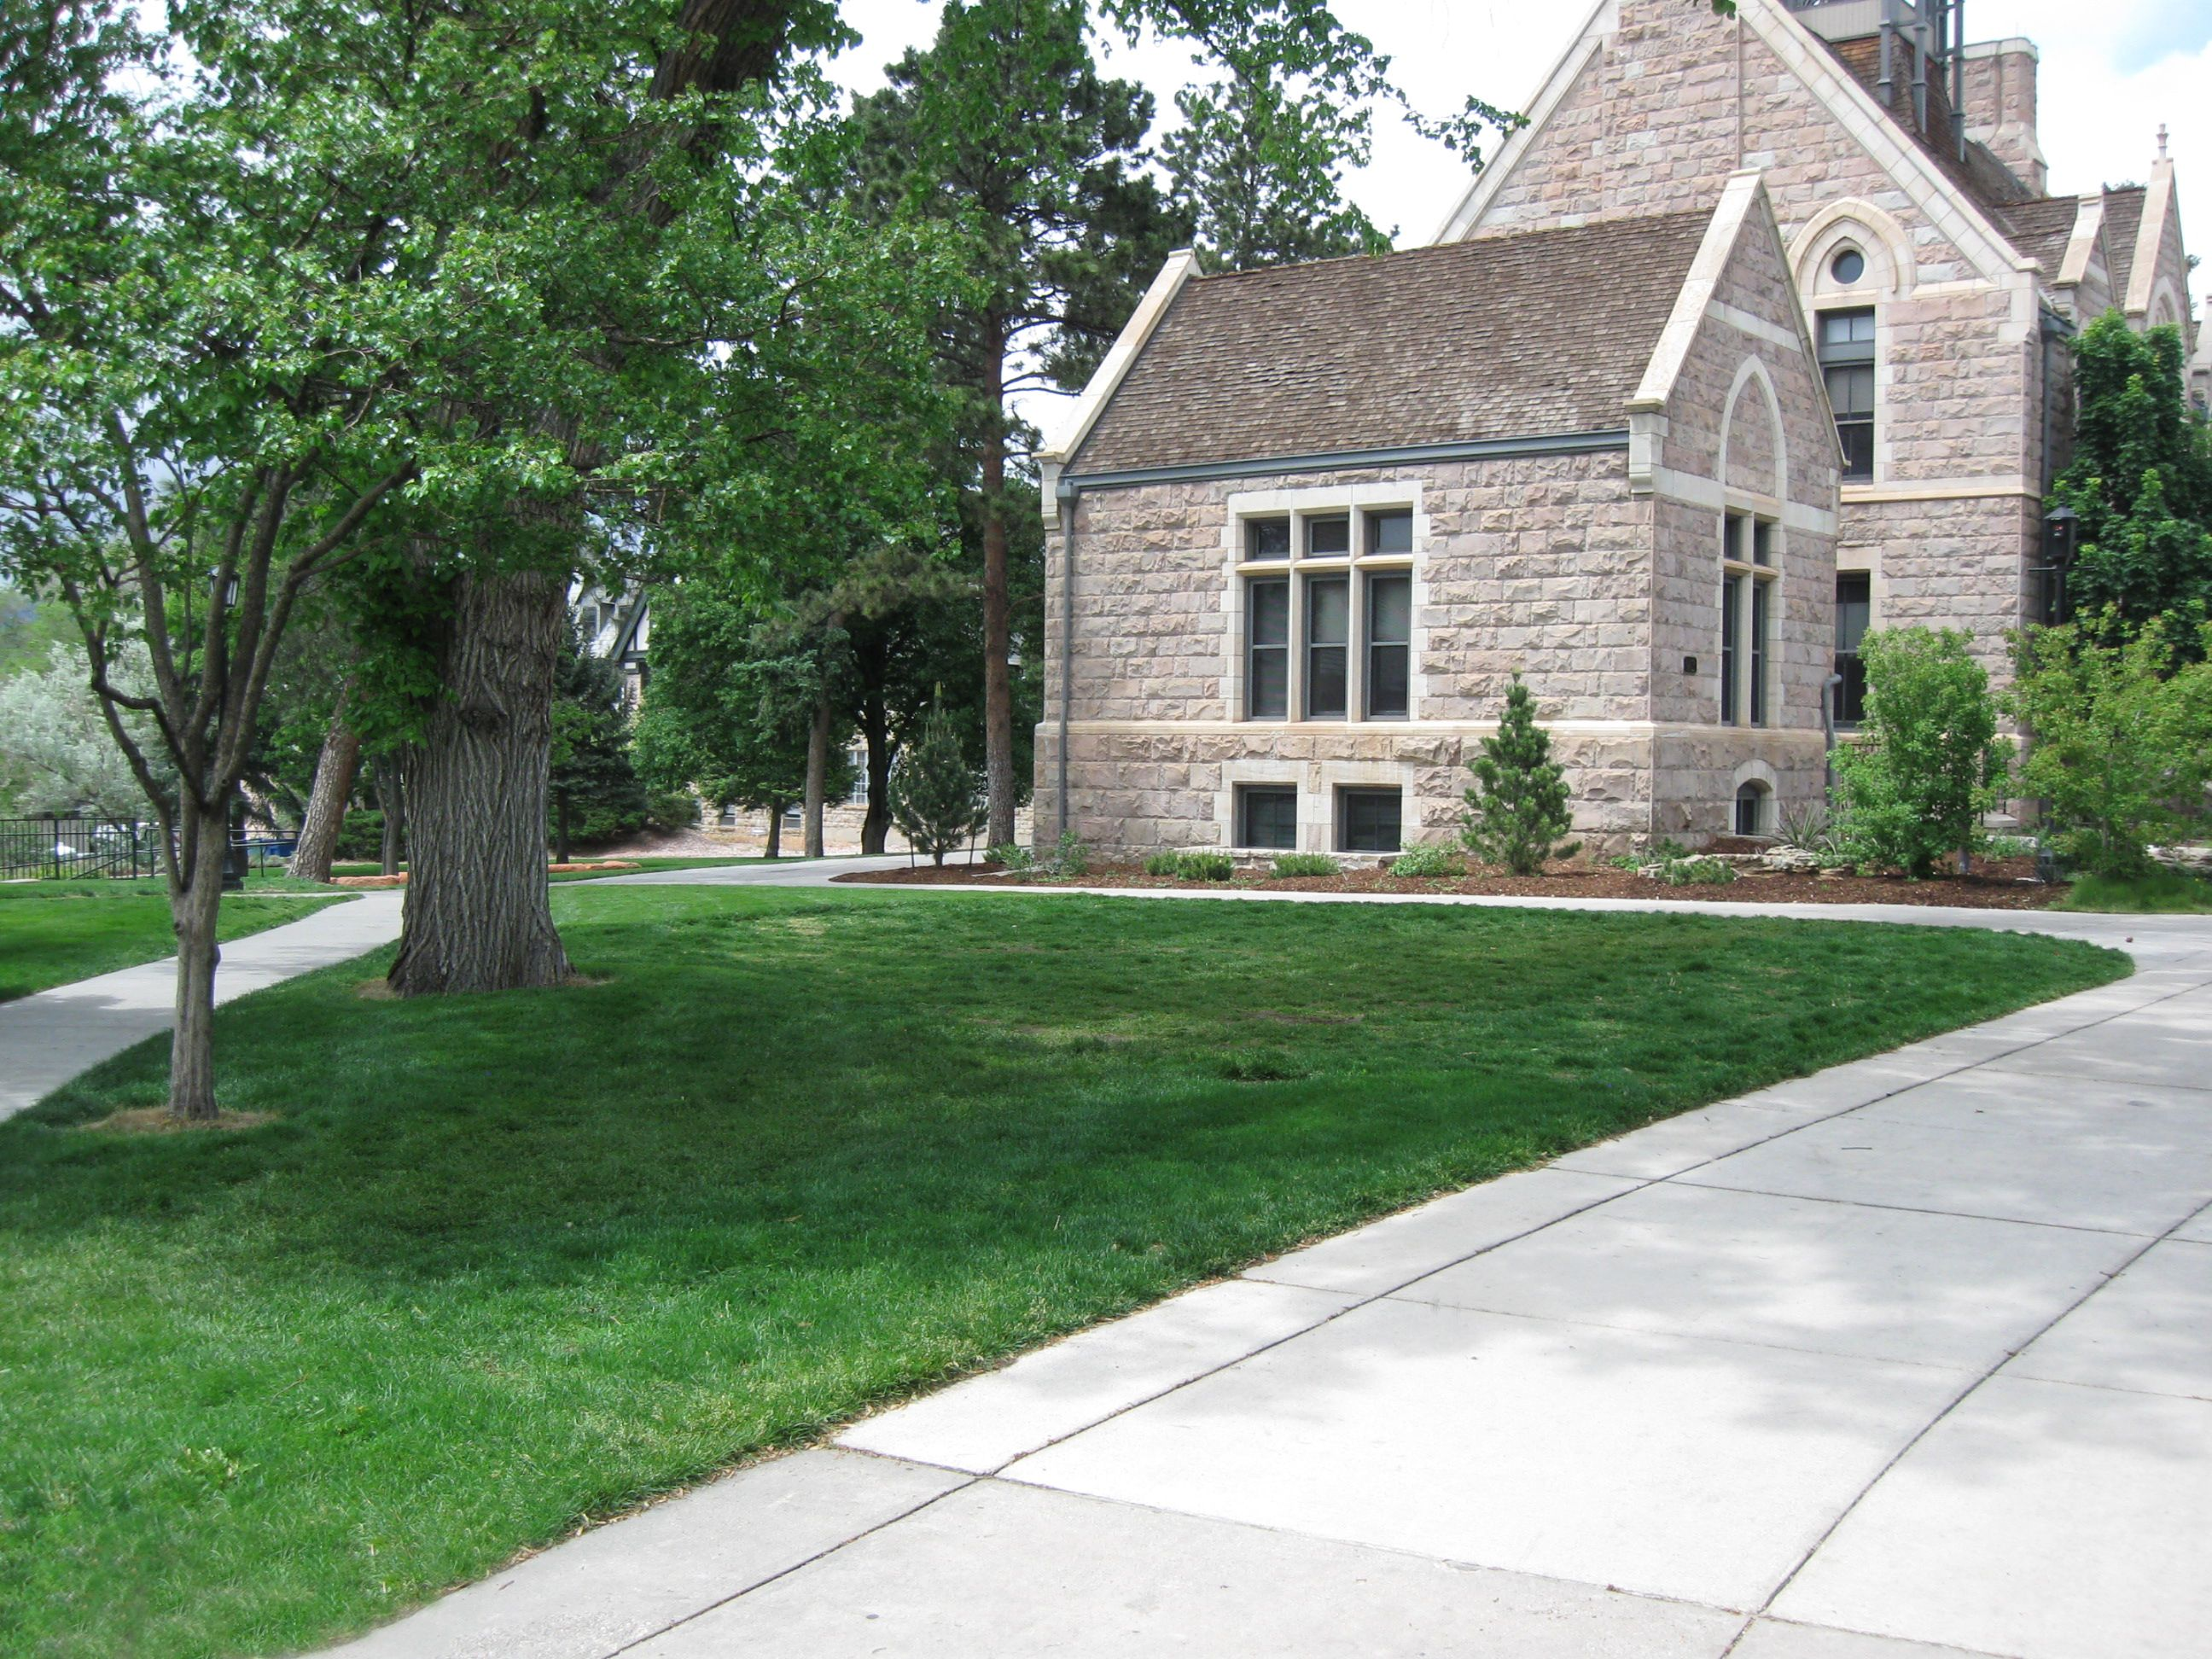 Grasscrete - Colorado College - 03